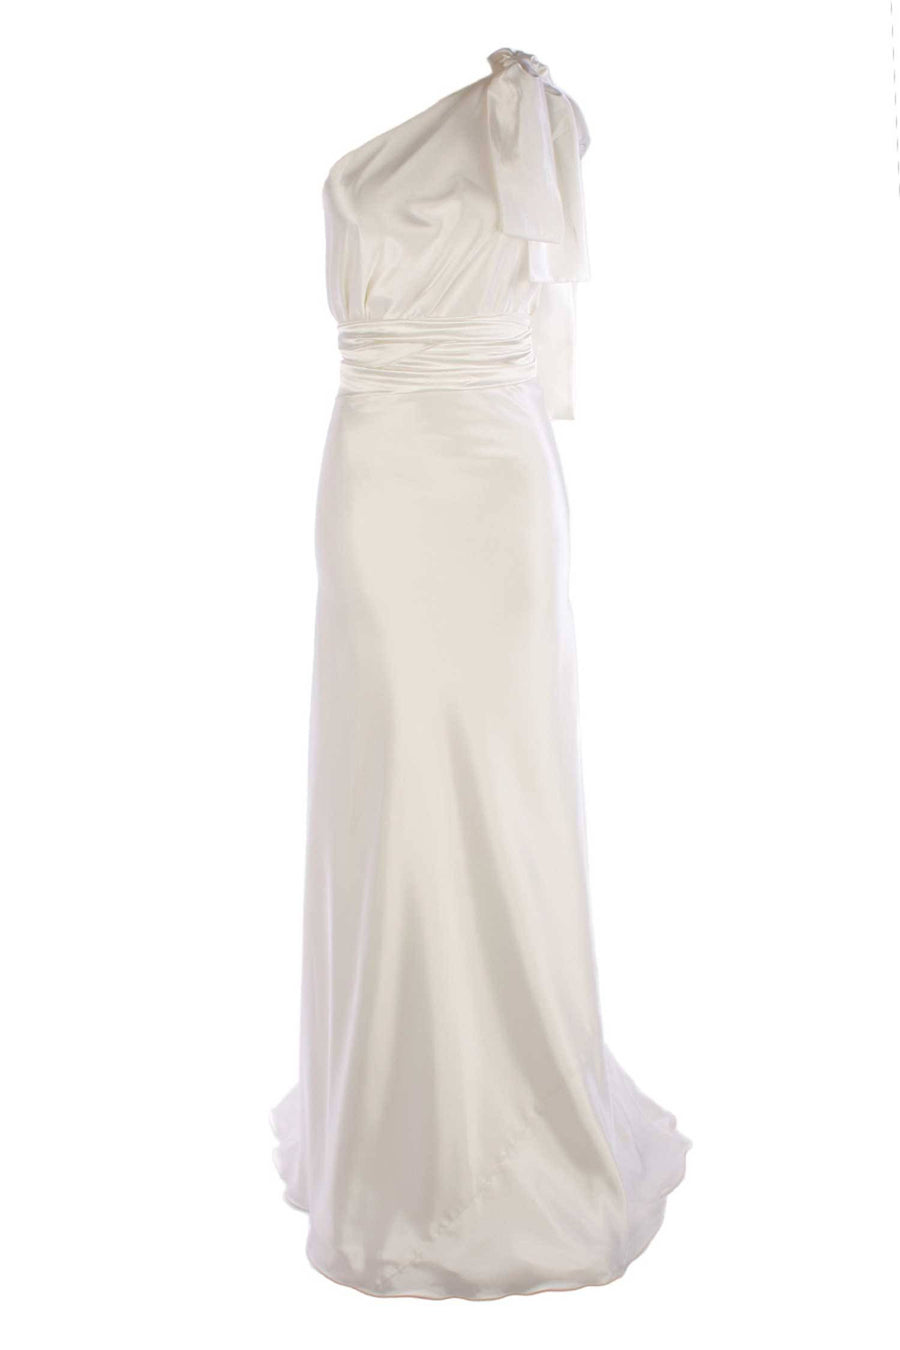 chelsea-one-shoulder-stretch-satin-gown-by-leiela